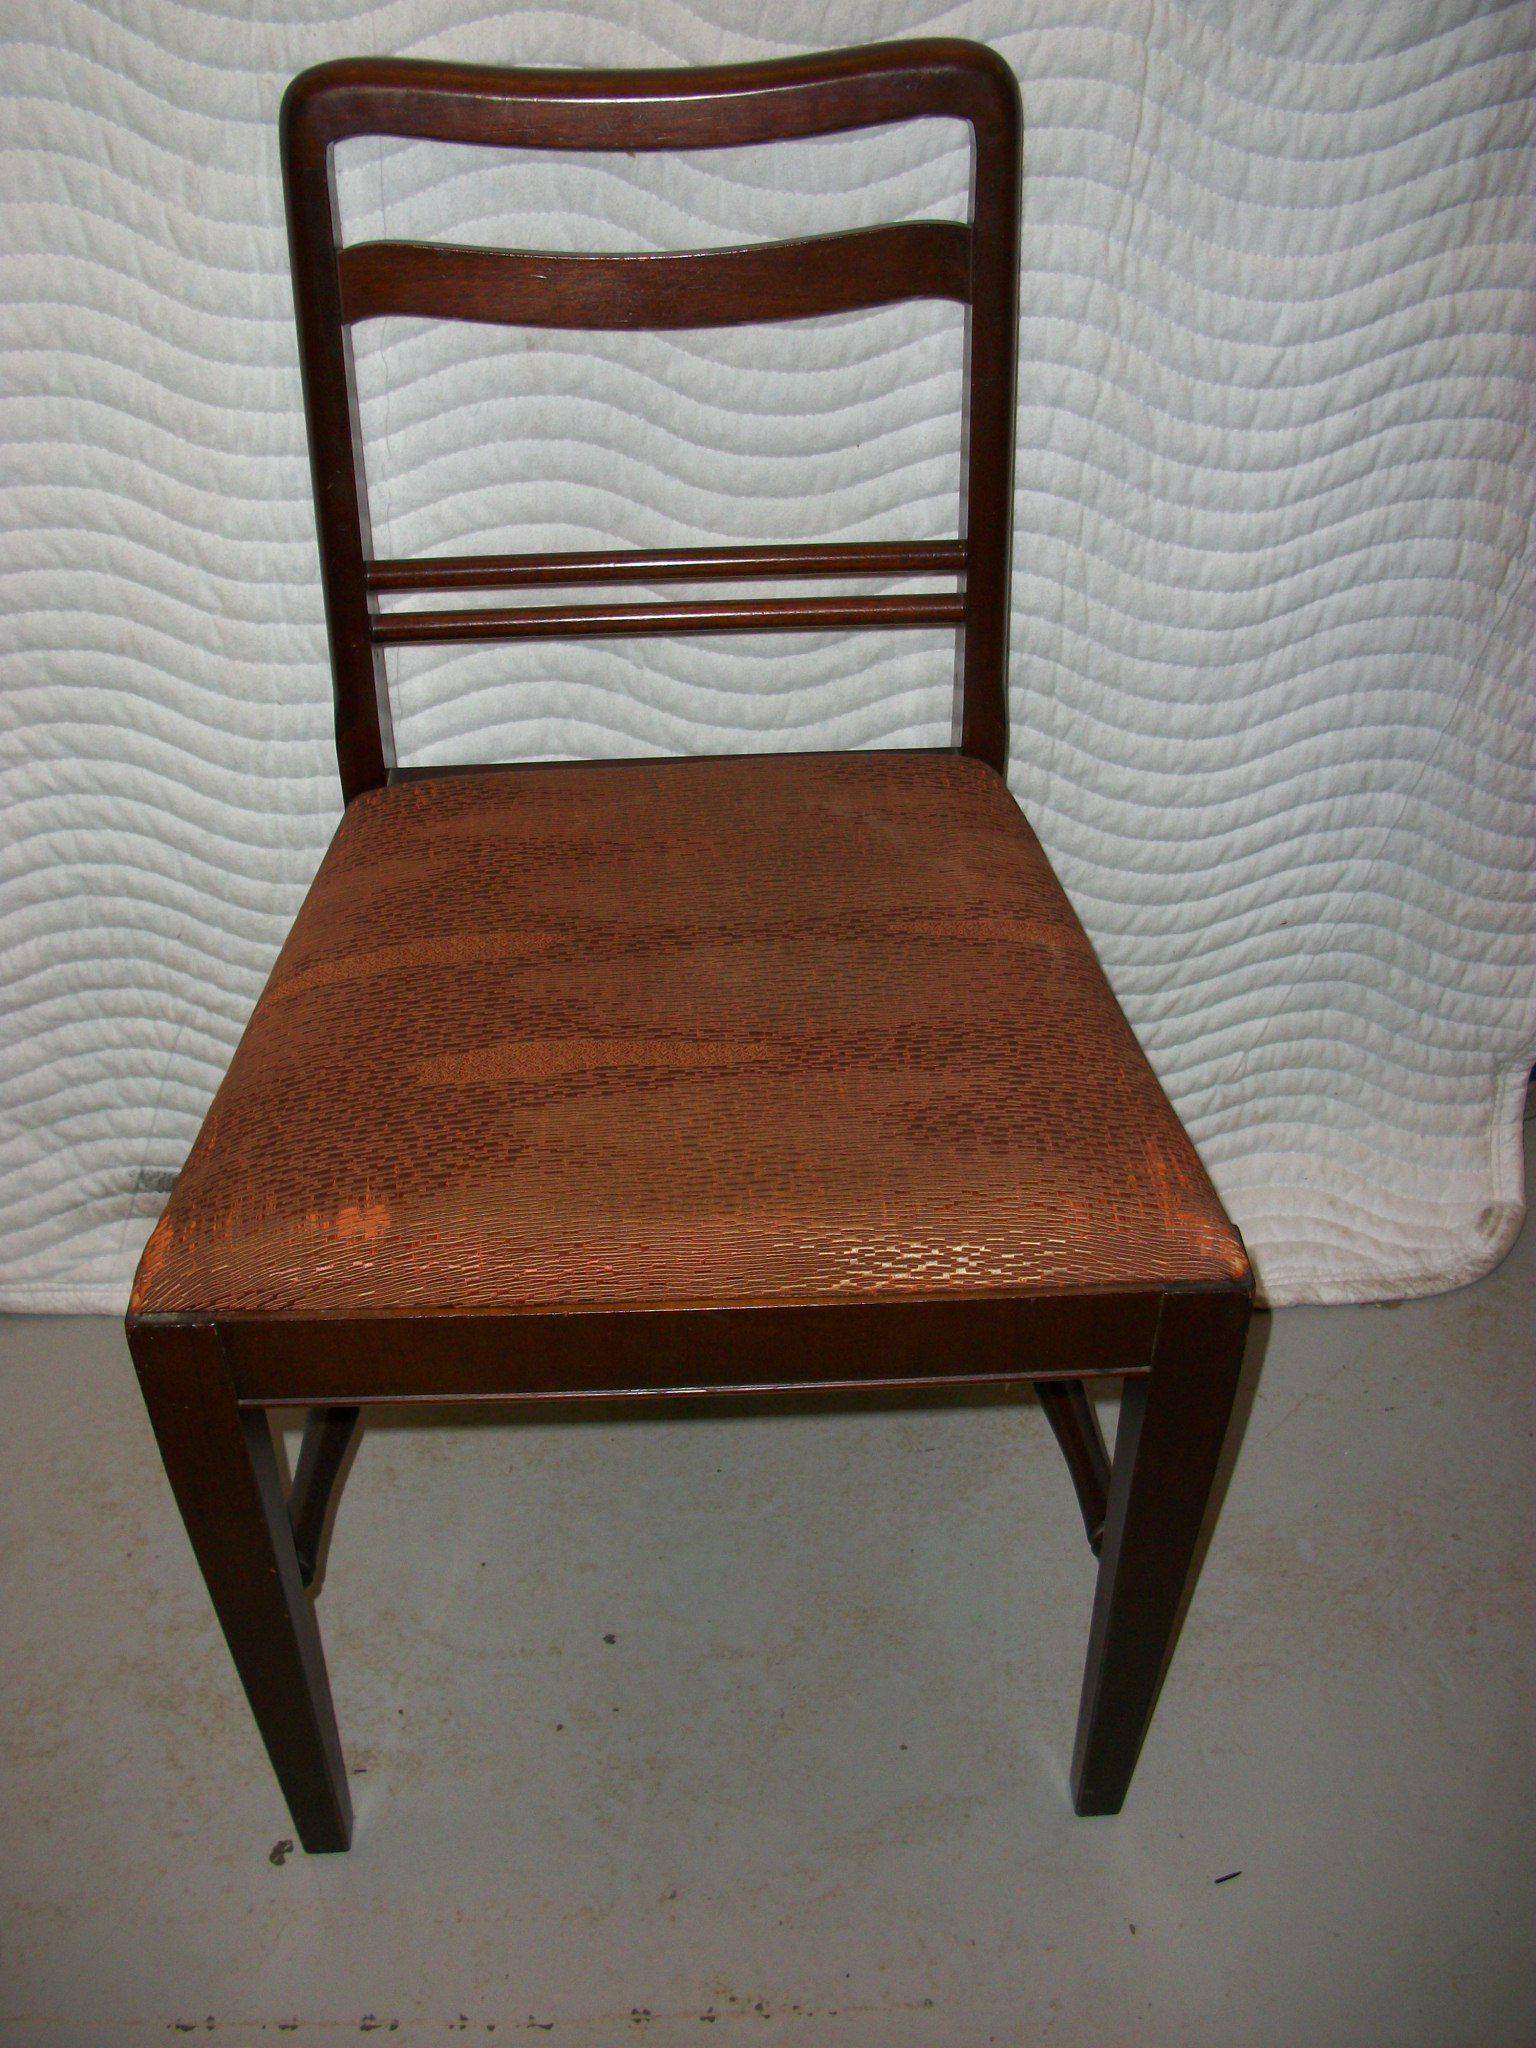 1992 40 4 Chair West Michigan Furniture Company Ca 1927